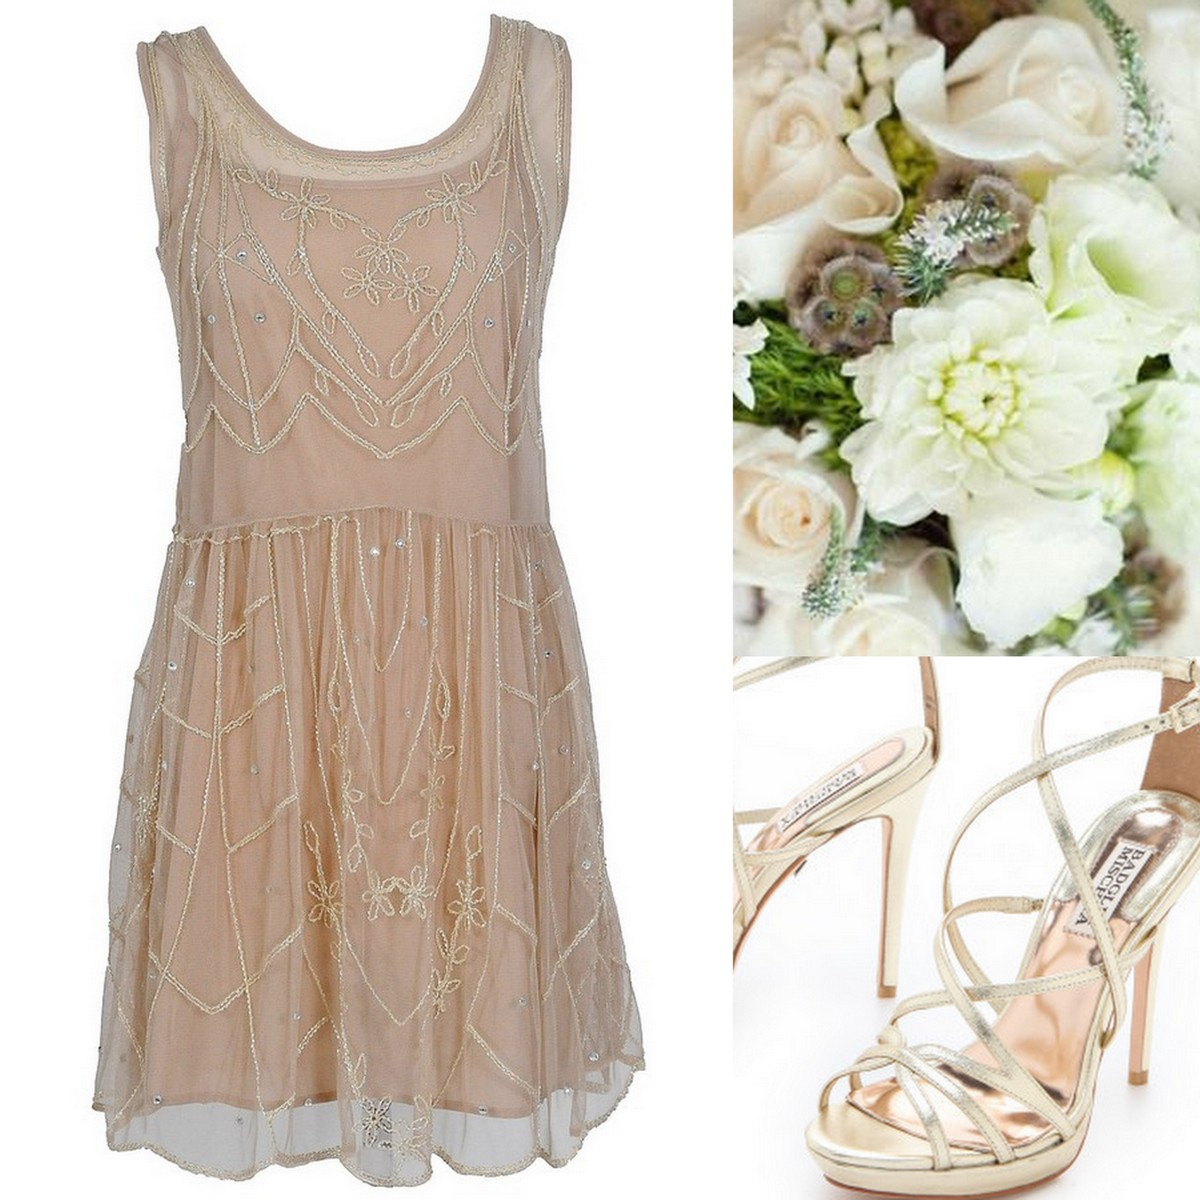 Style Inspiration Design Beige Beaded Dress With Gladiator Stry Sandal